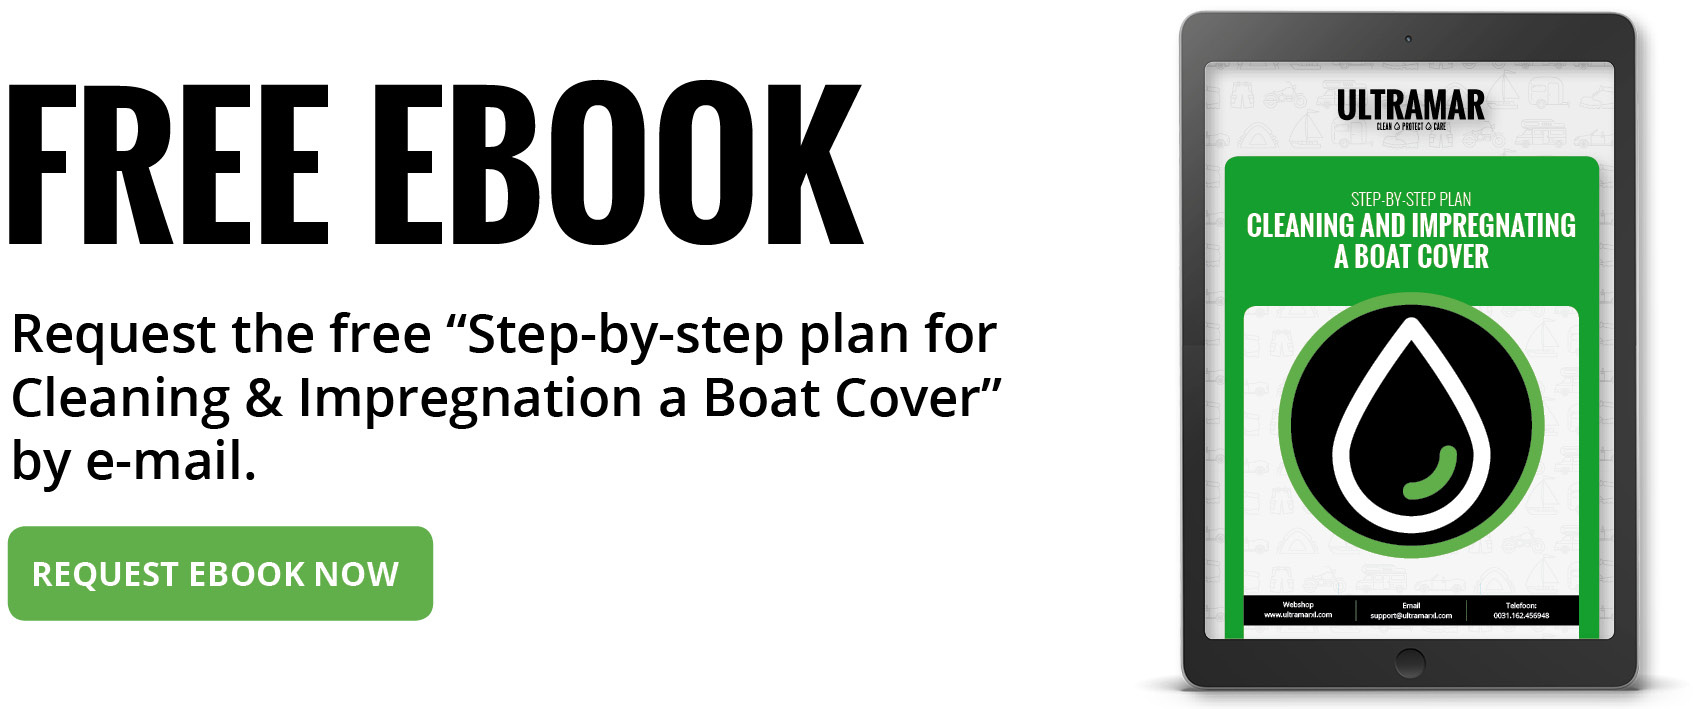 Step-by-step planCleaning and impregnating a boat cover: